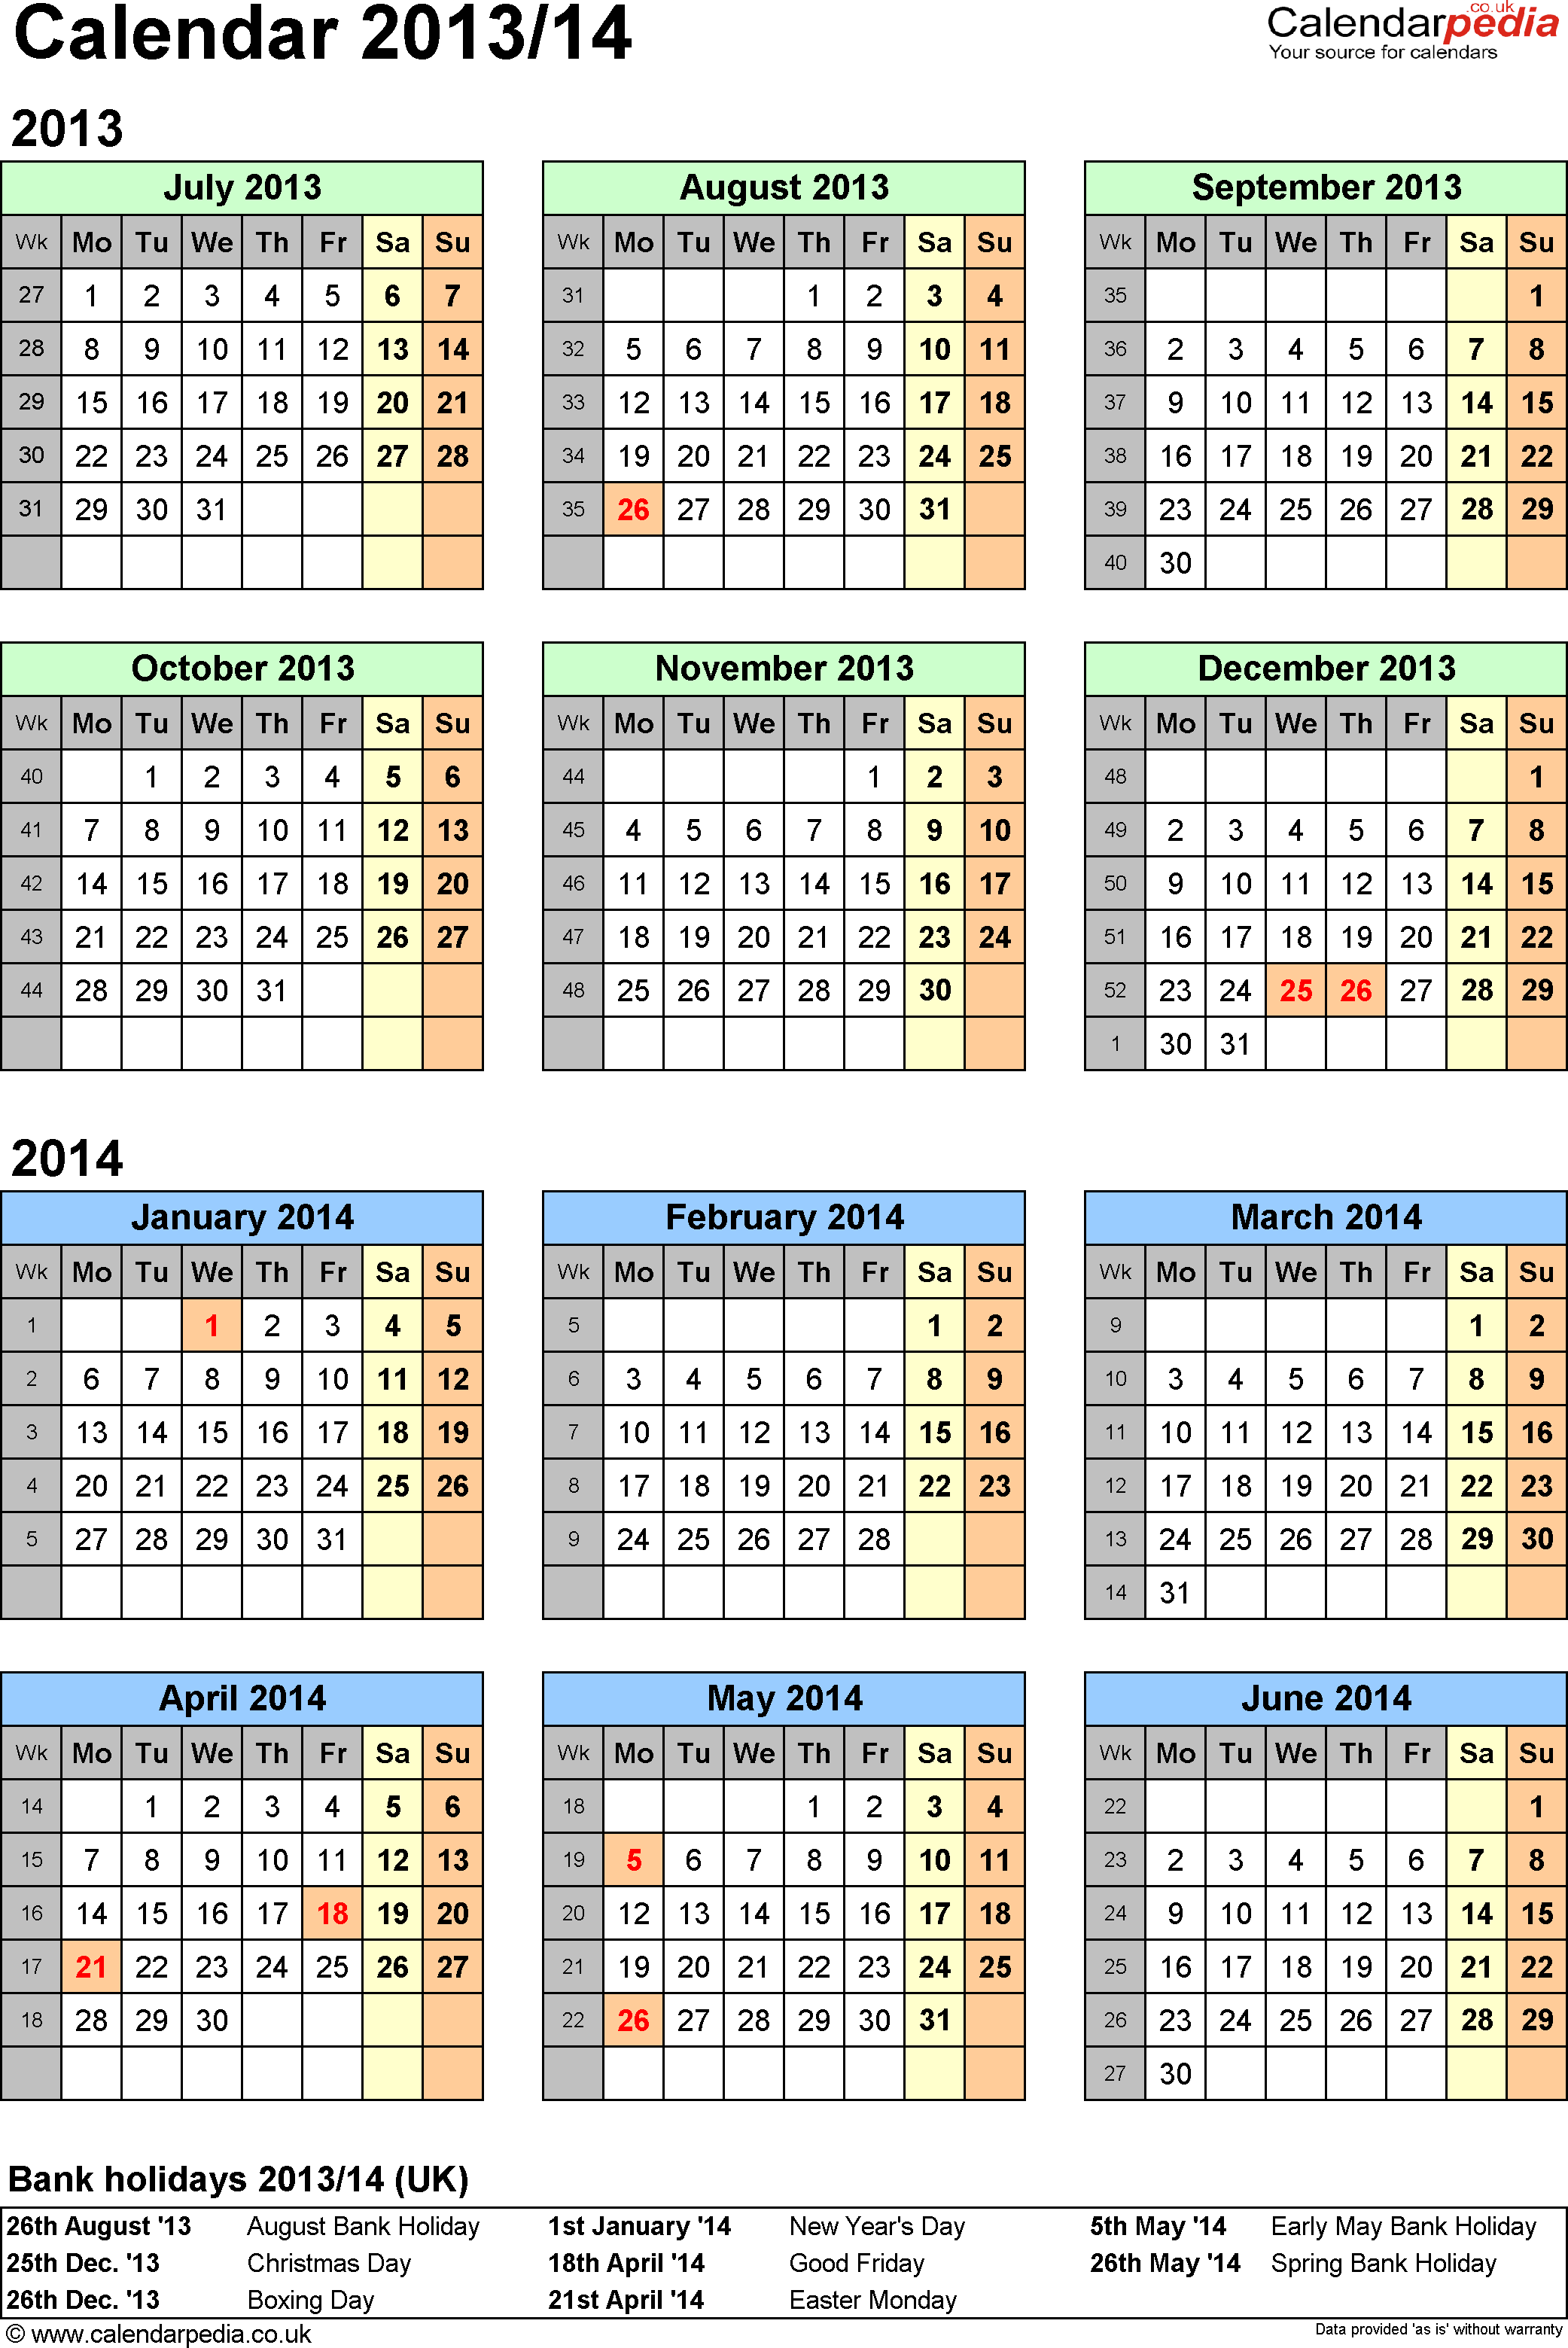 2 month calendar template 2014 - split year calendars 2013 14 july to june for word uk